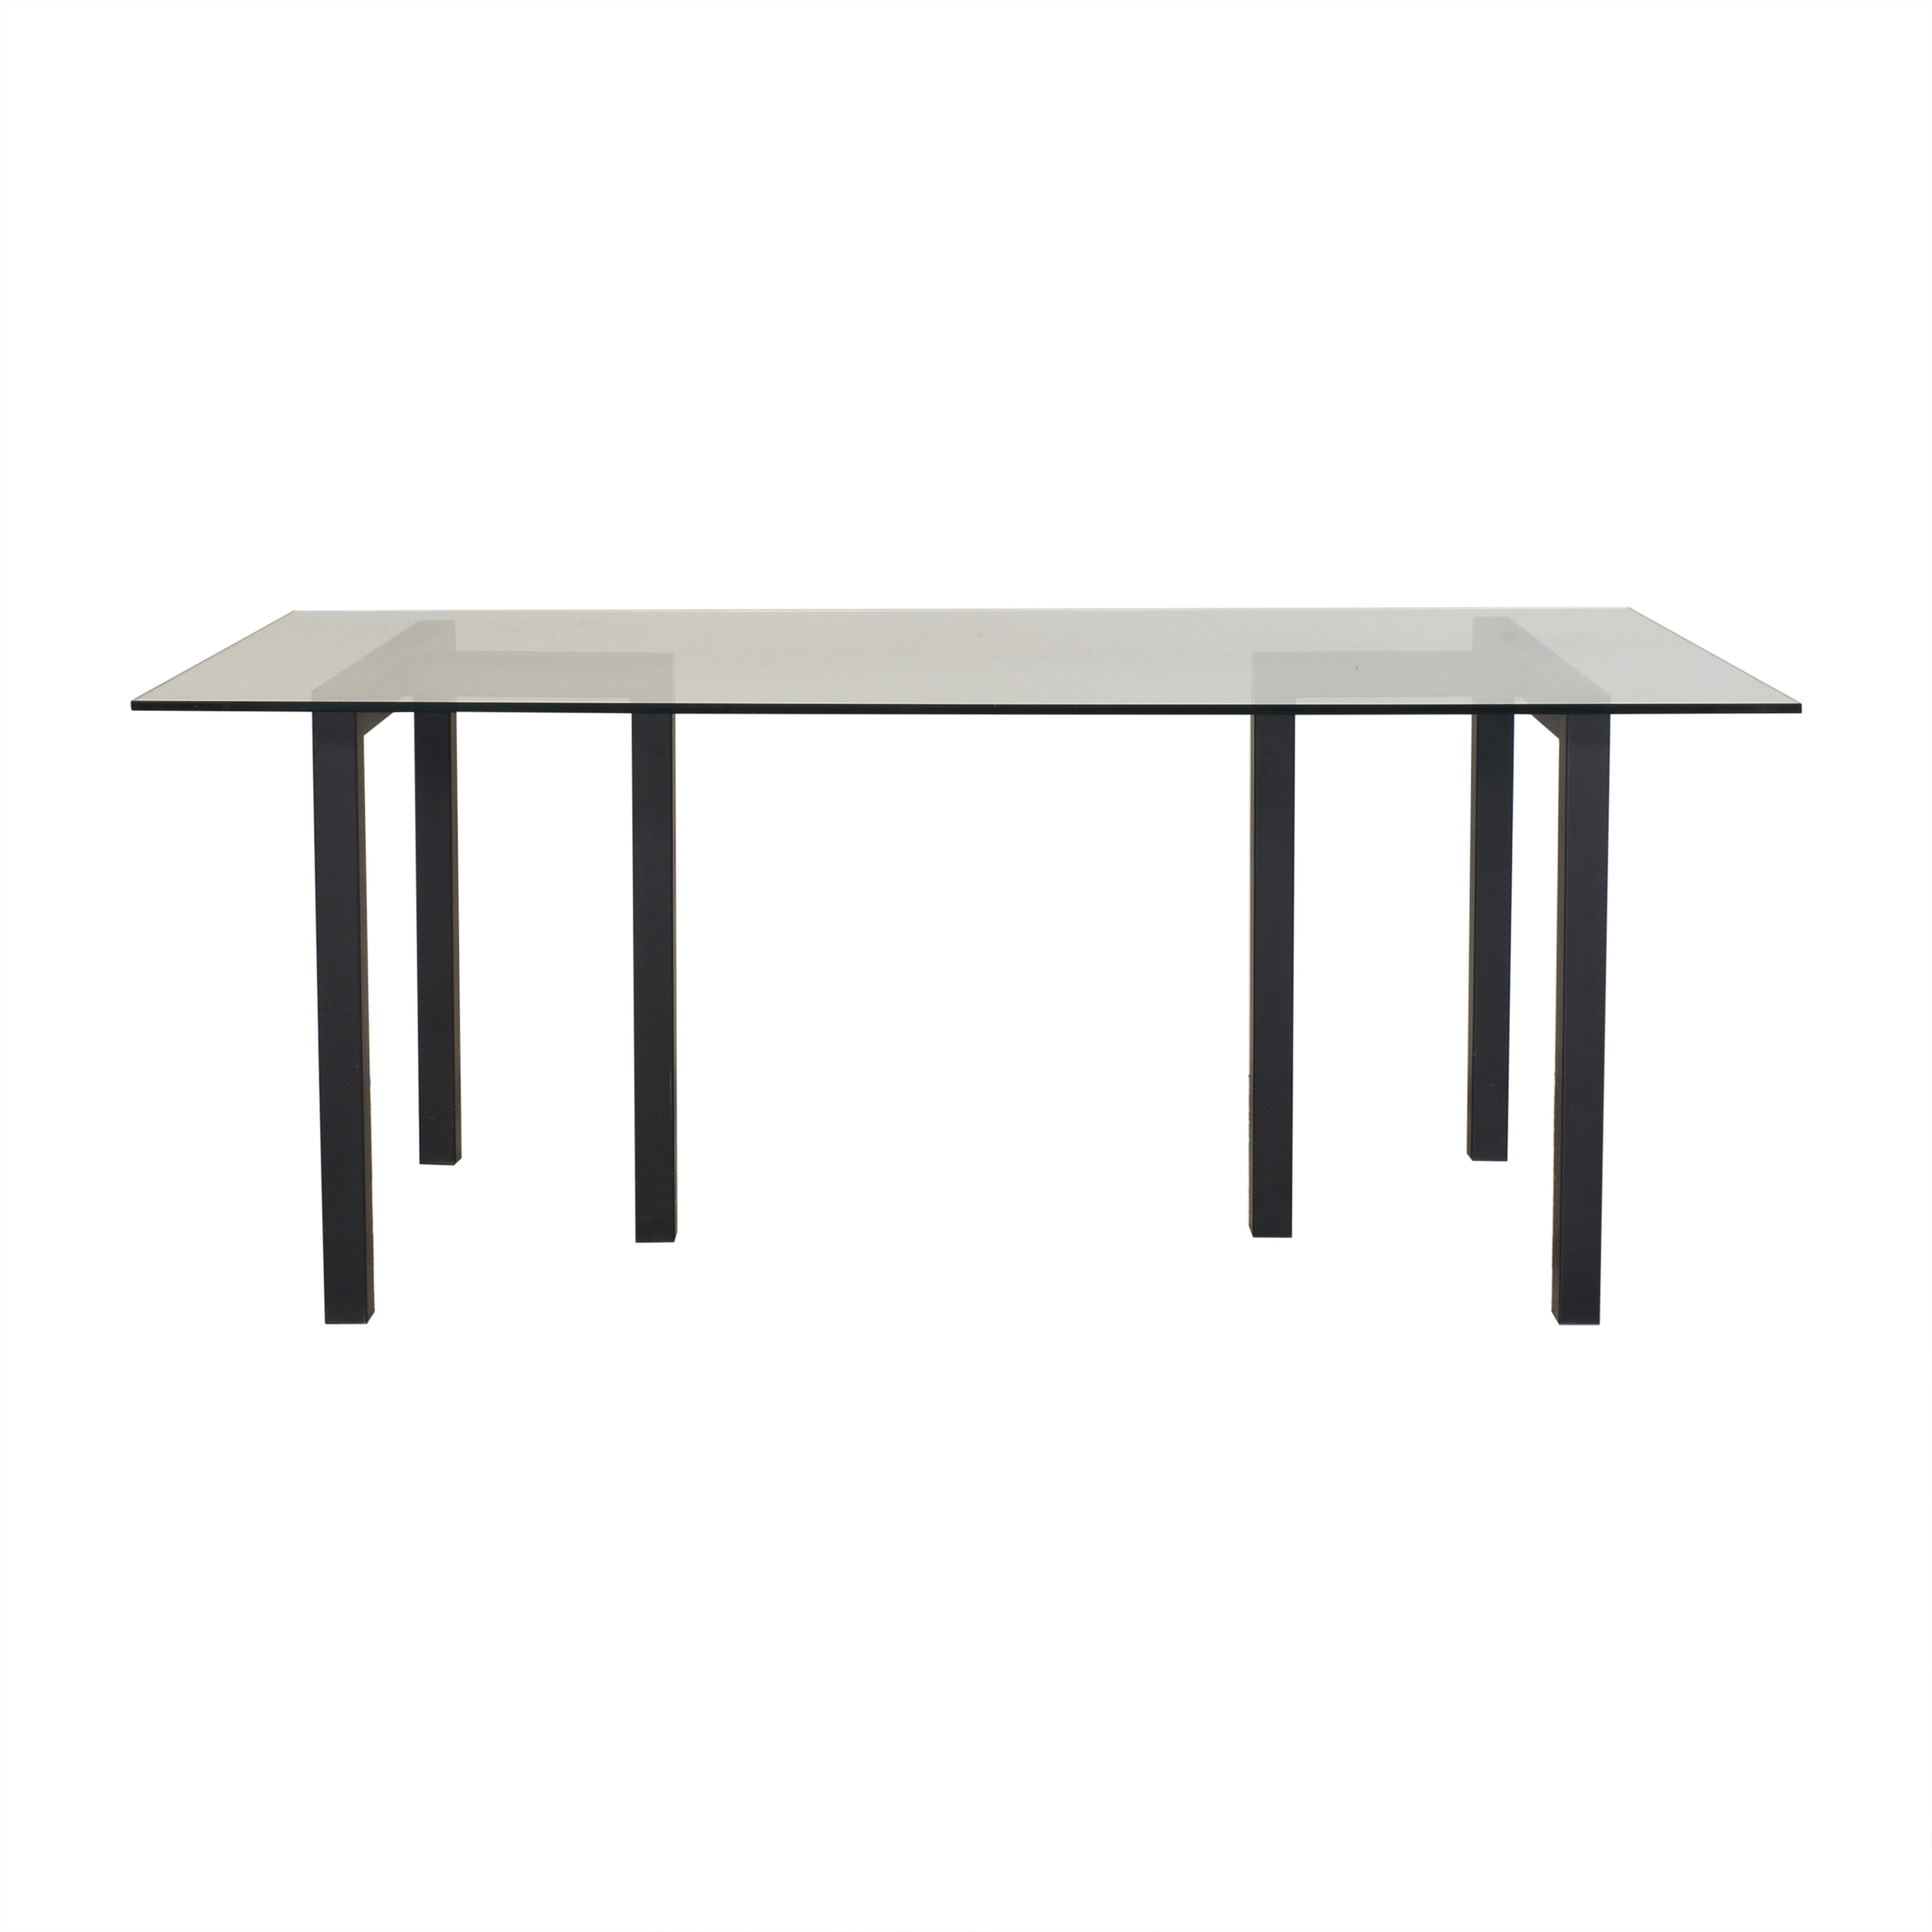 buy Crate & Barrel Crate & Barrel Dining Table with Transparent Surface online